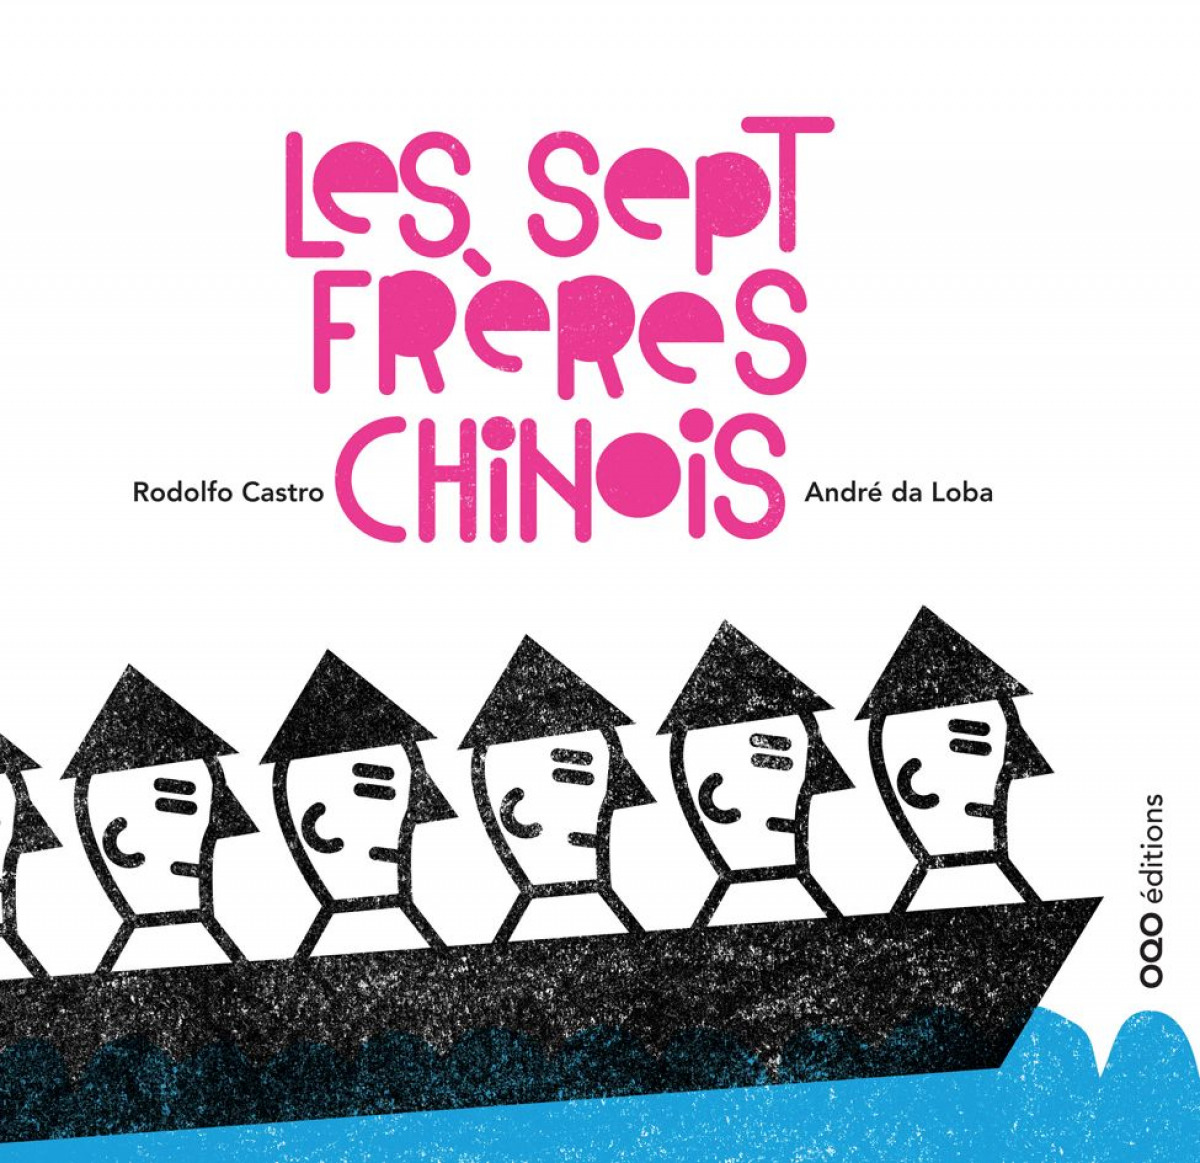 Le sept frères chinois